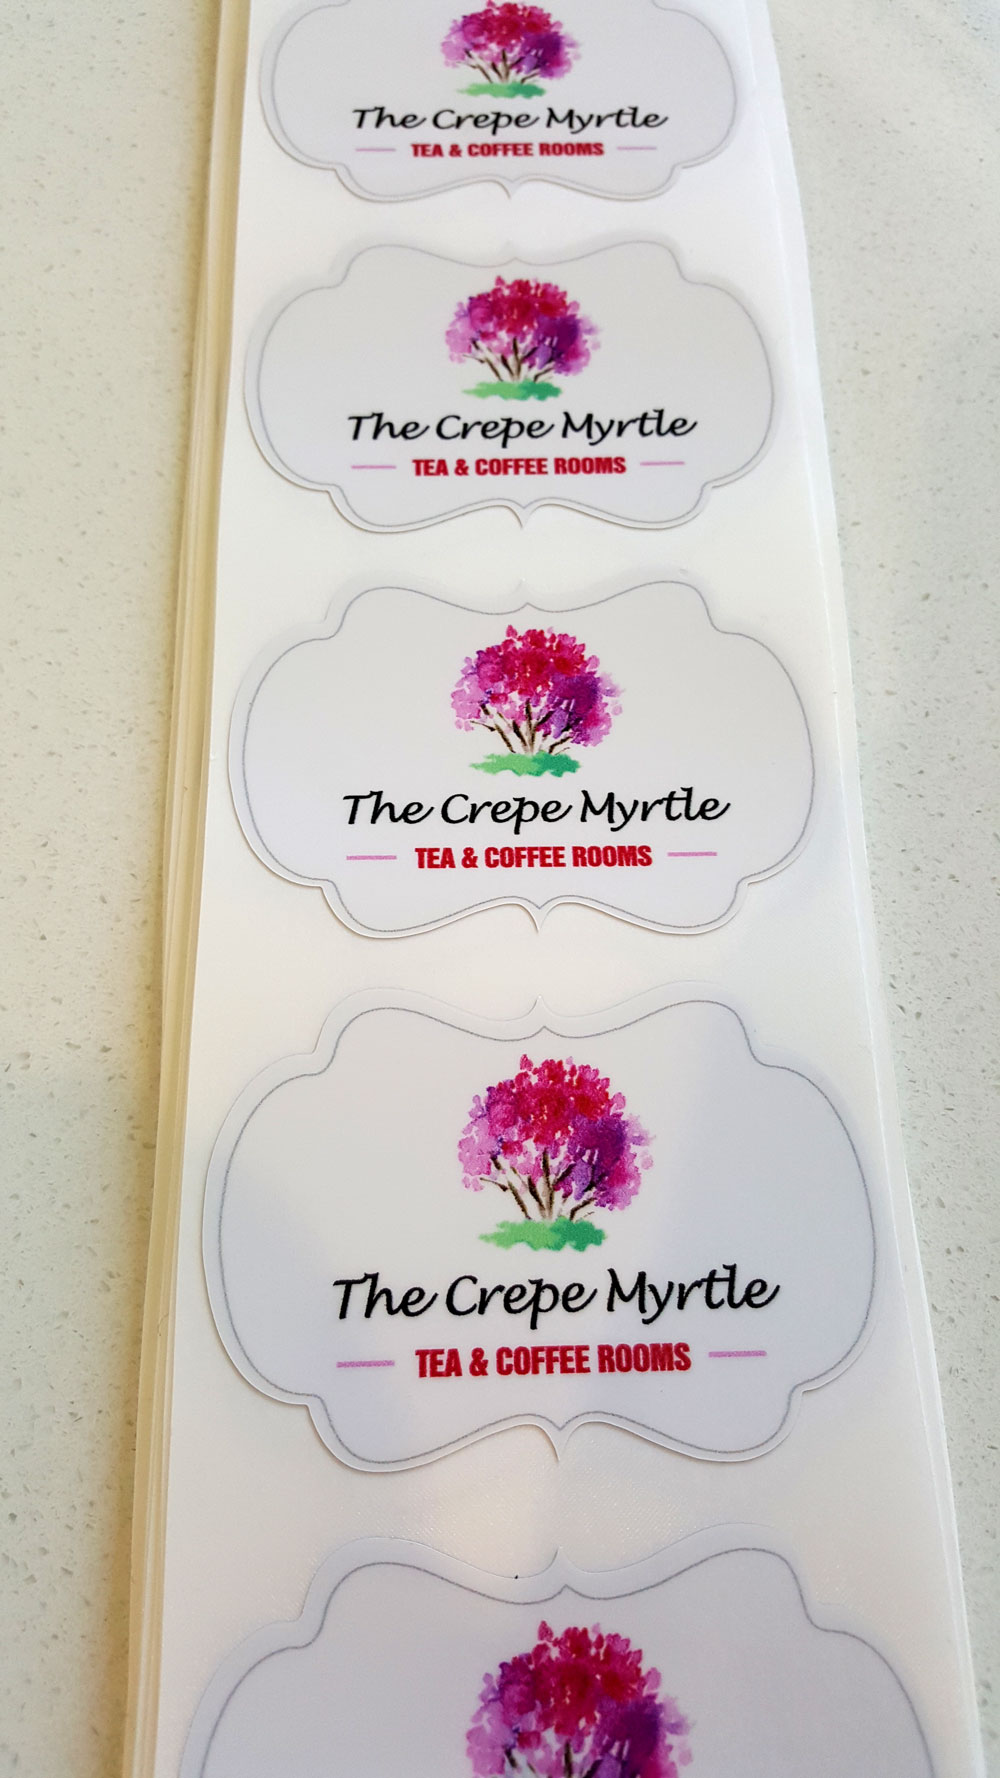 Crepe-Myrtle-Stroud-Think-Graphic-Communication-sml-decals.jpg